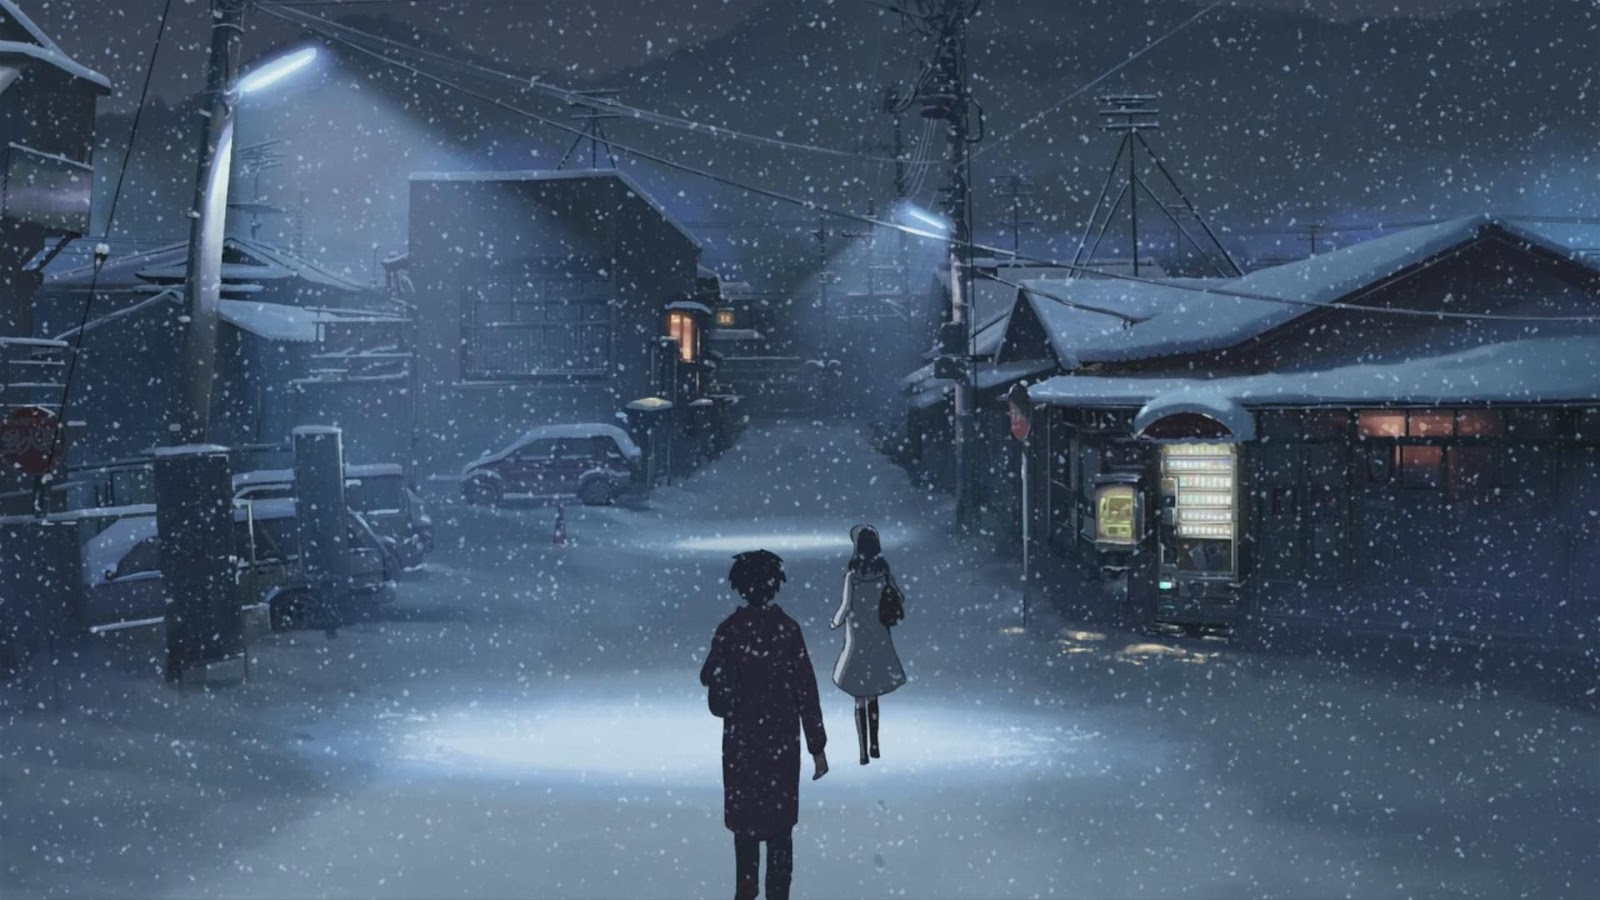 33 5 Centimeters Per Second Wallpaper Magone 2016